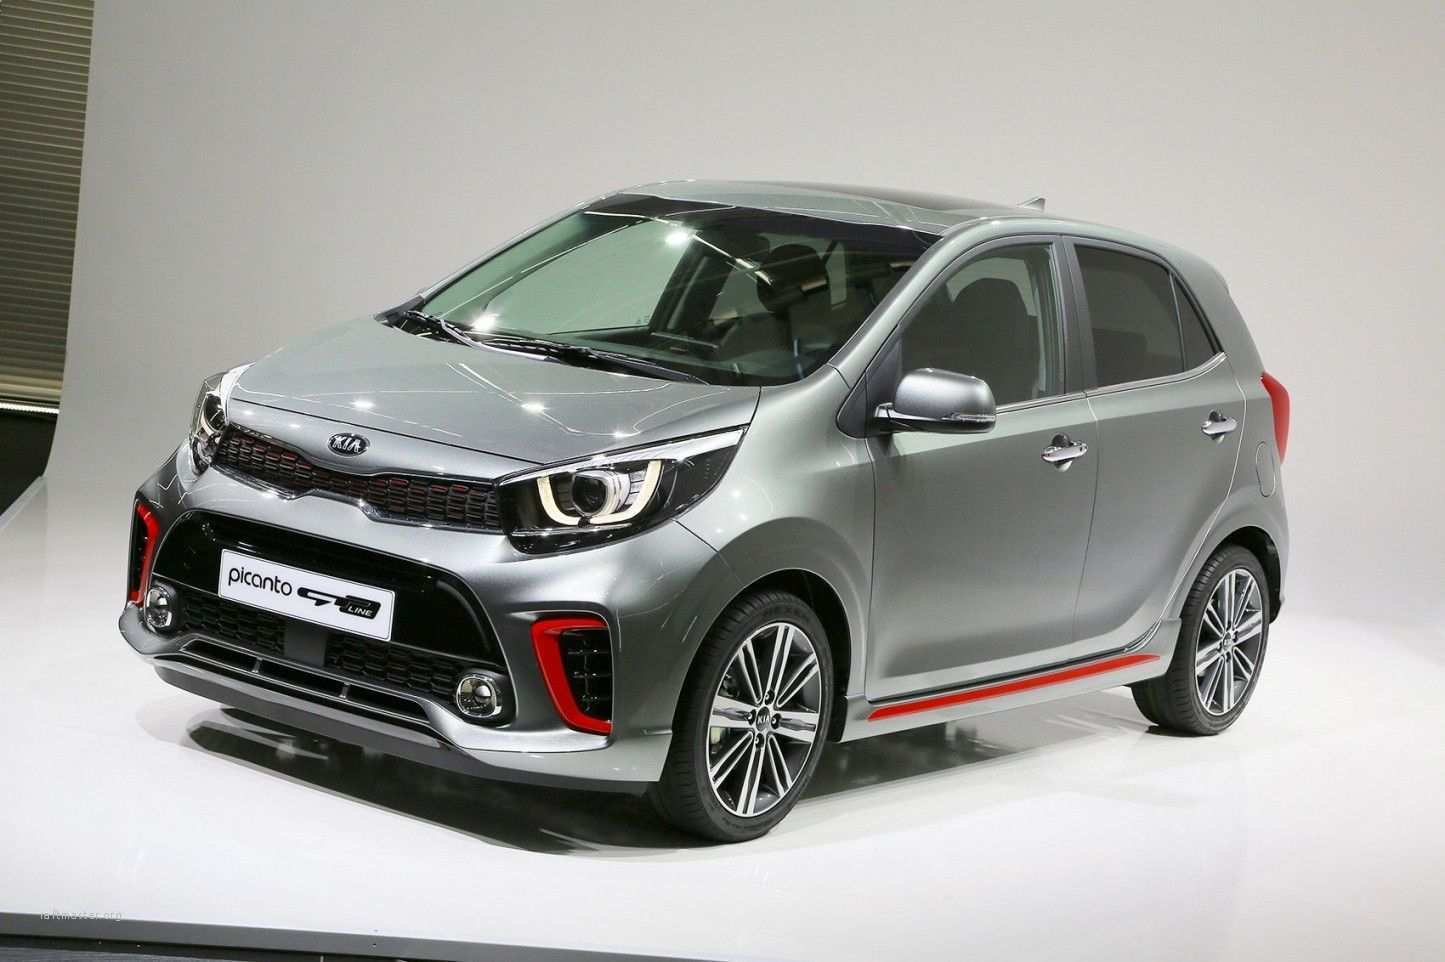 91 The Best 2020 Kia Picanto Egypt Specs And Review